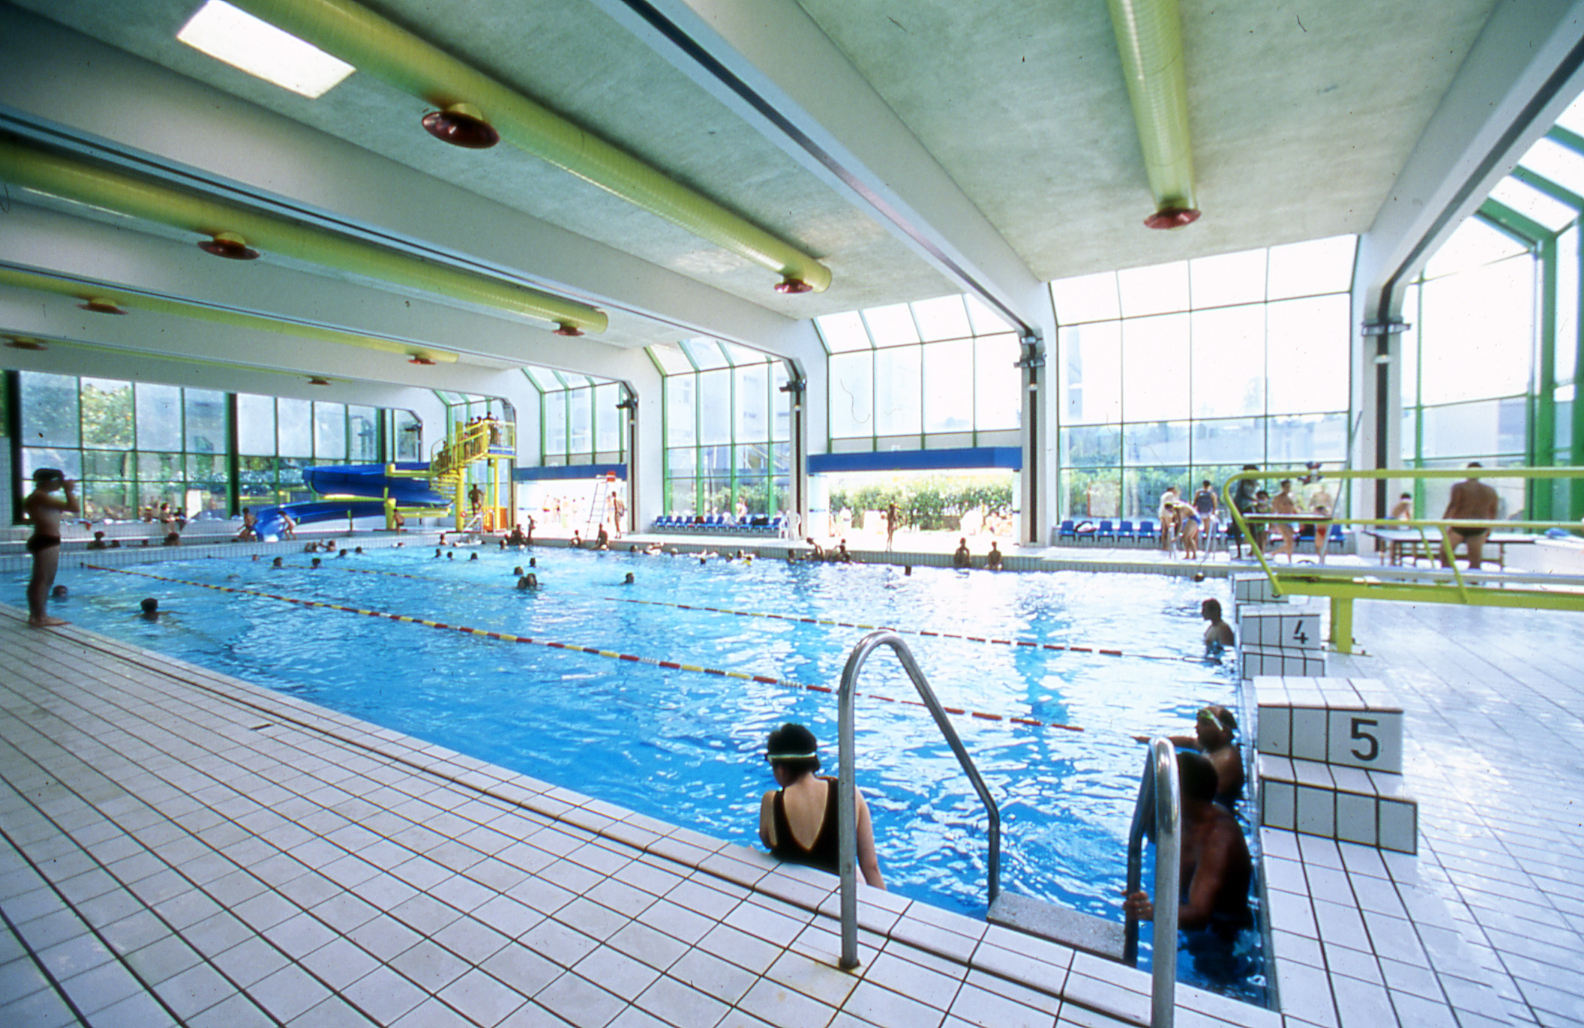 Piscine champerret sport 17e arrondissement paris for Piscine de levallois horaires